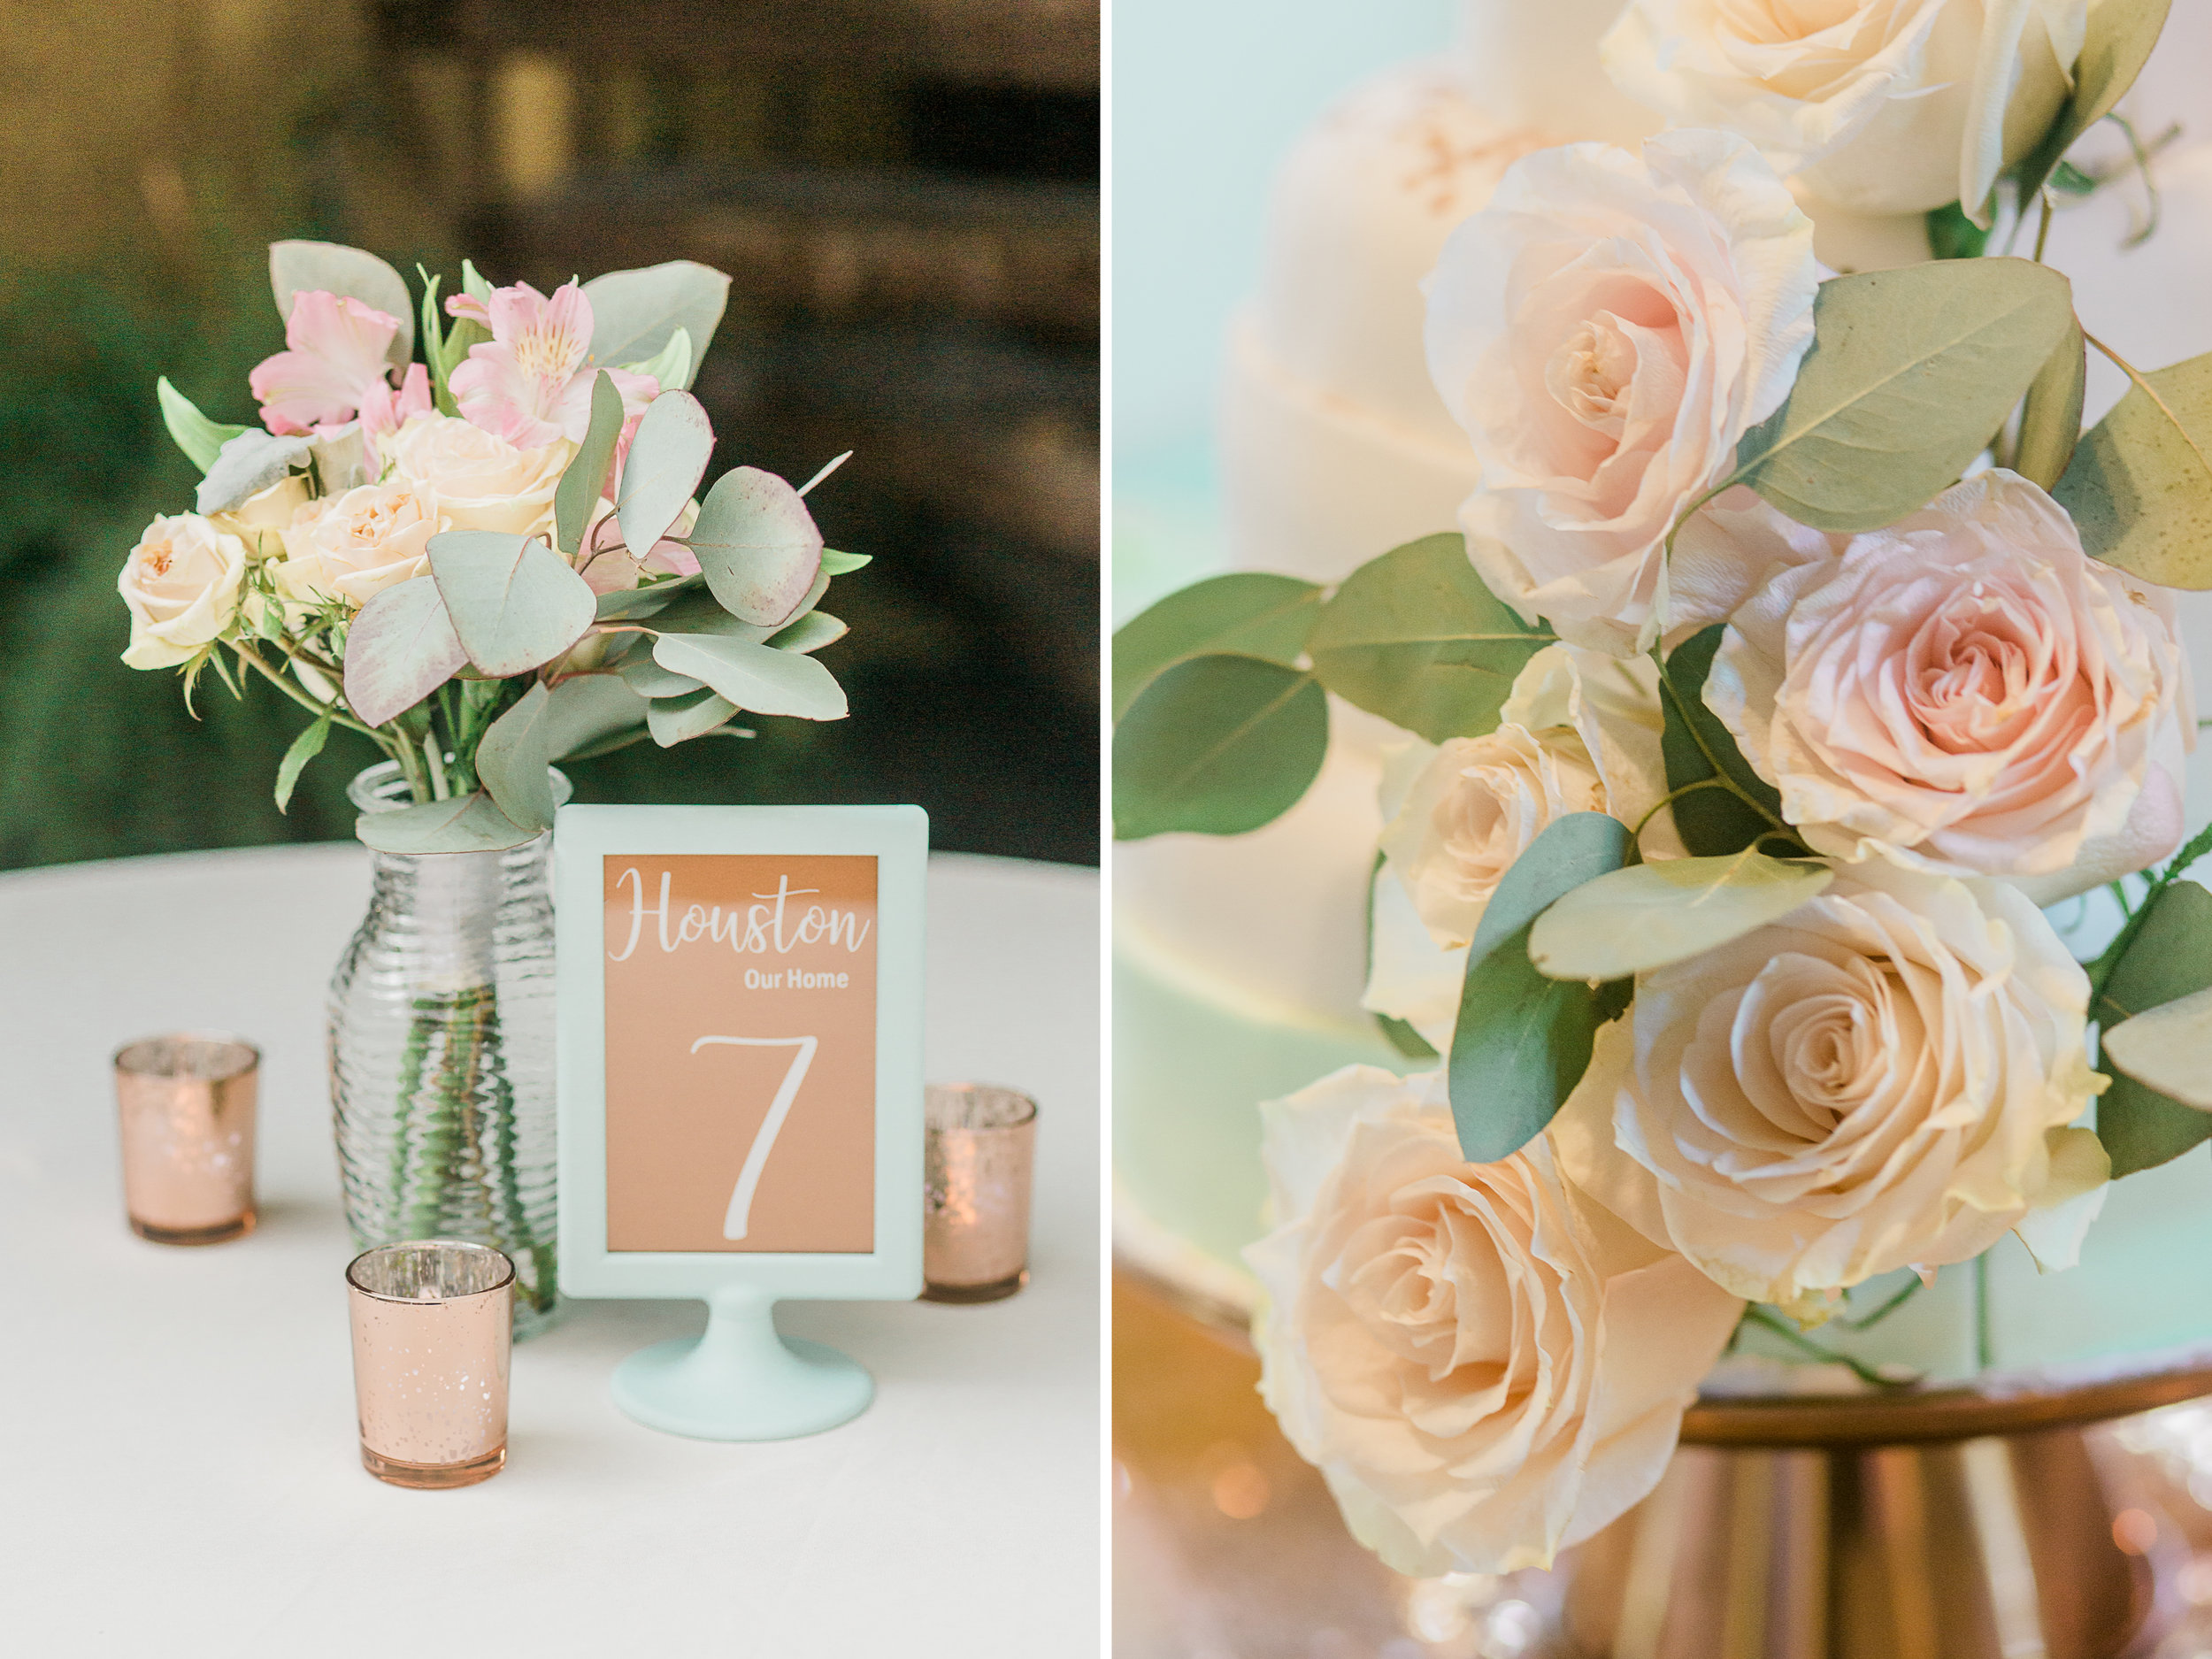 SmithWedding_HoustonTexasWeddingPhotographer_LightandAiry_FilmPhotographer_AvantGarden_HoustonHeightsWedding22.jpg